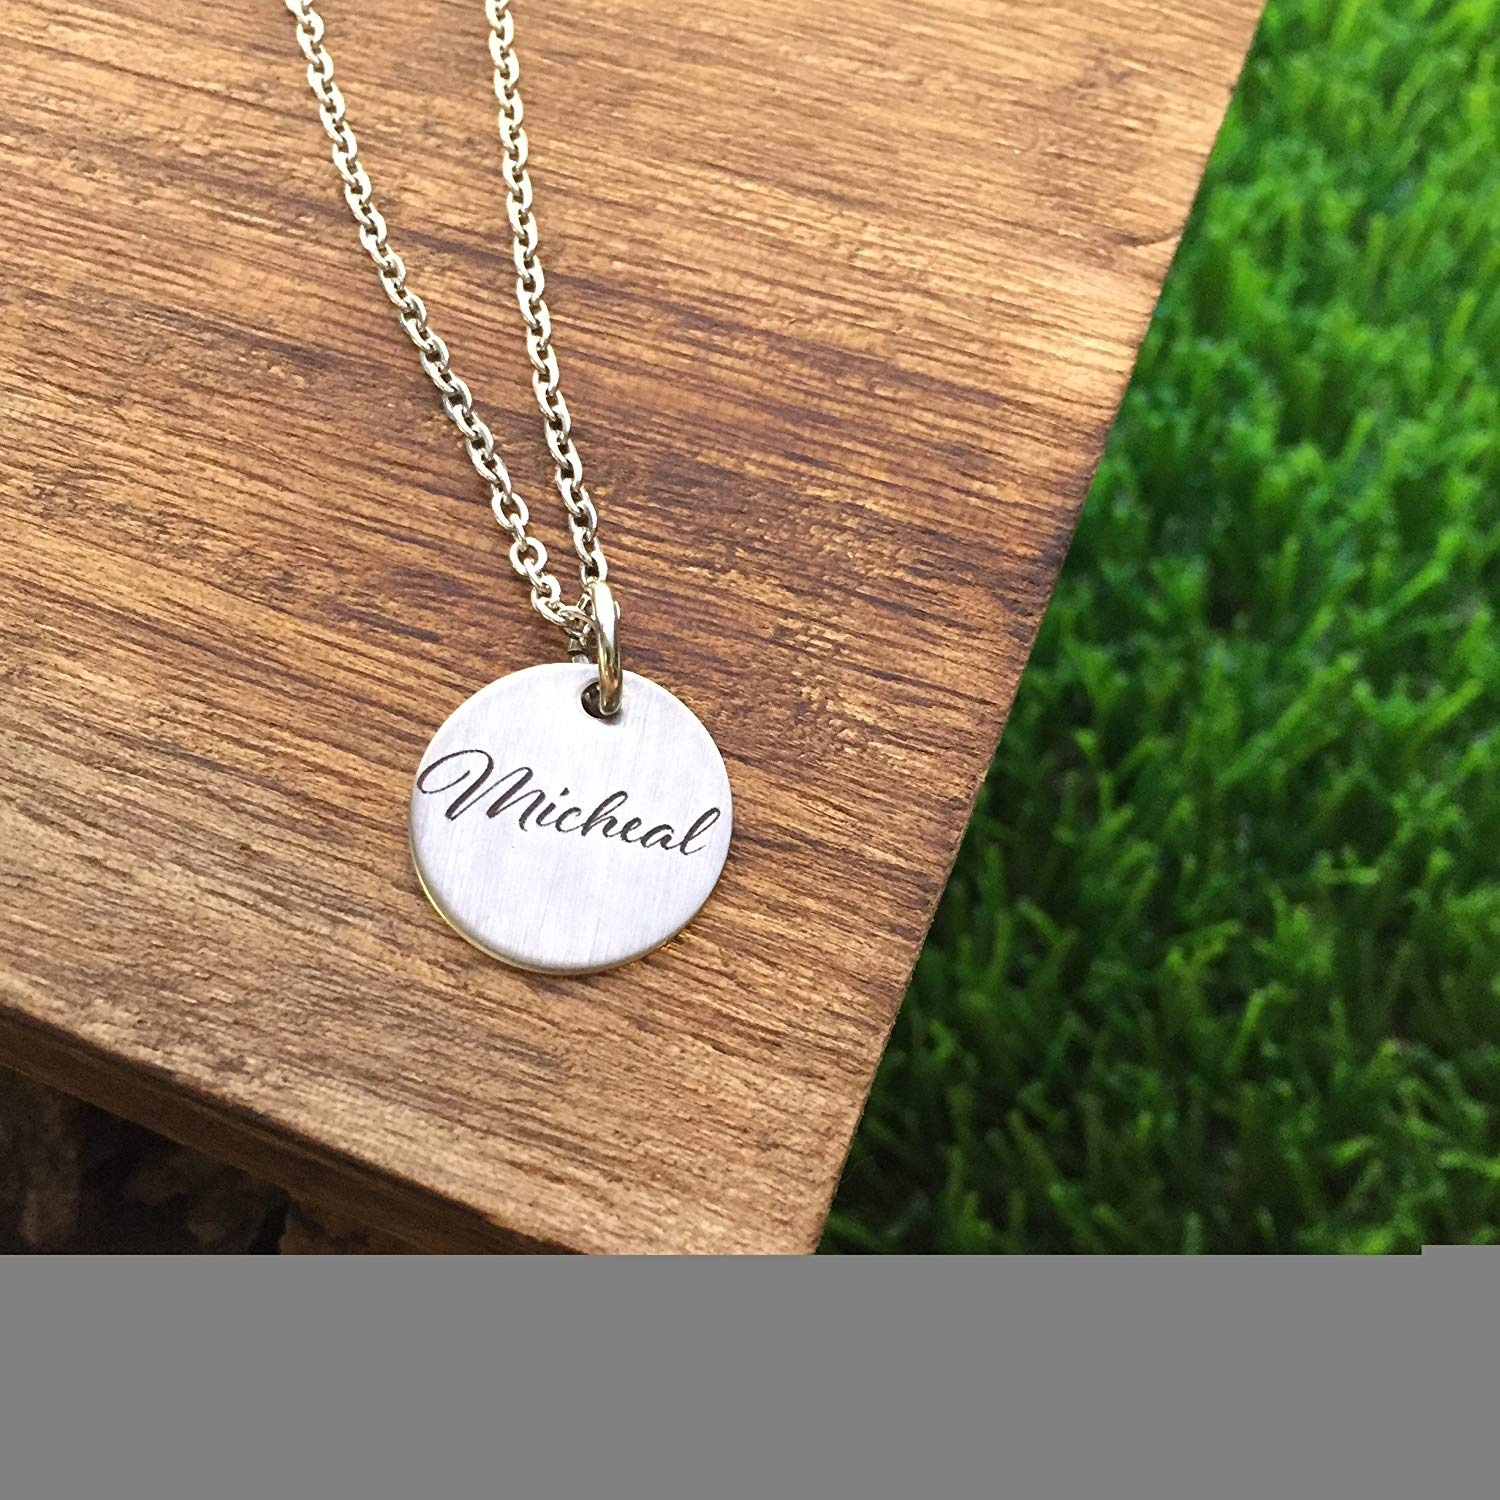 Personalized Name Disc Necklace Gifts for Wife Gifts Valentine's Day Gift For Wife Gift Jewelry Wife Birthday Christmas Gift